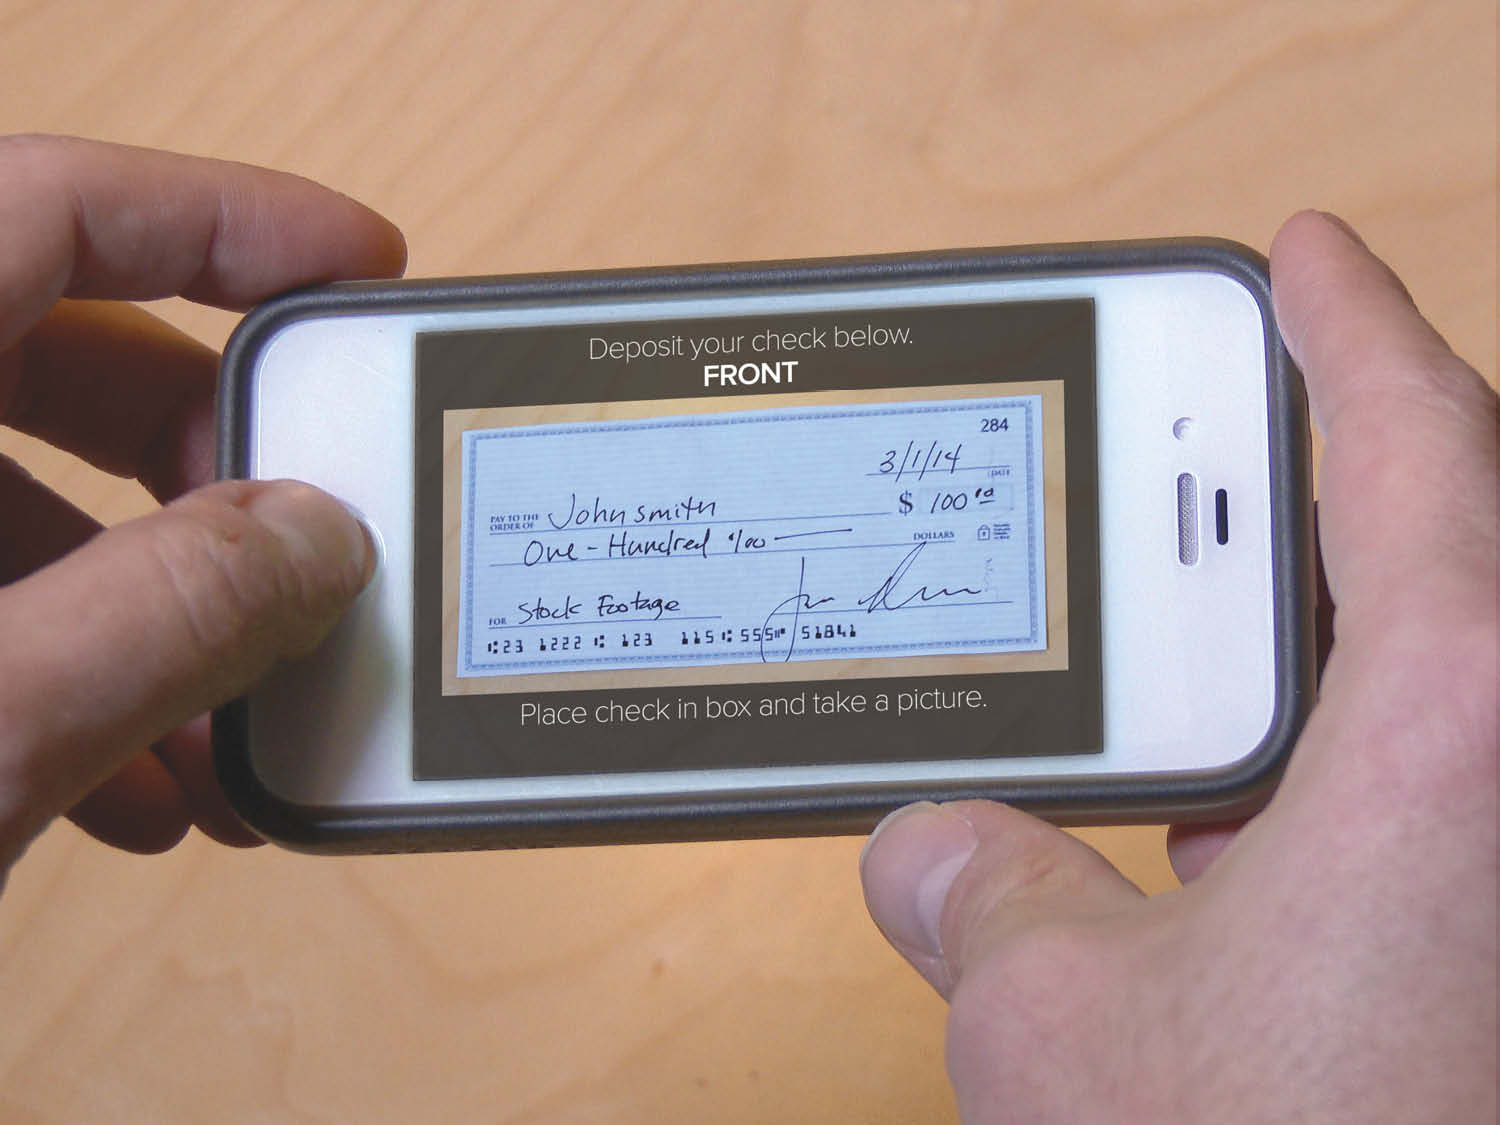 Take a picture of your check to make the Mobile Deposit